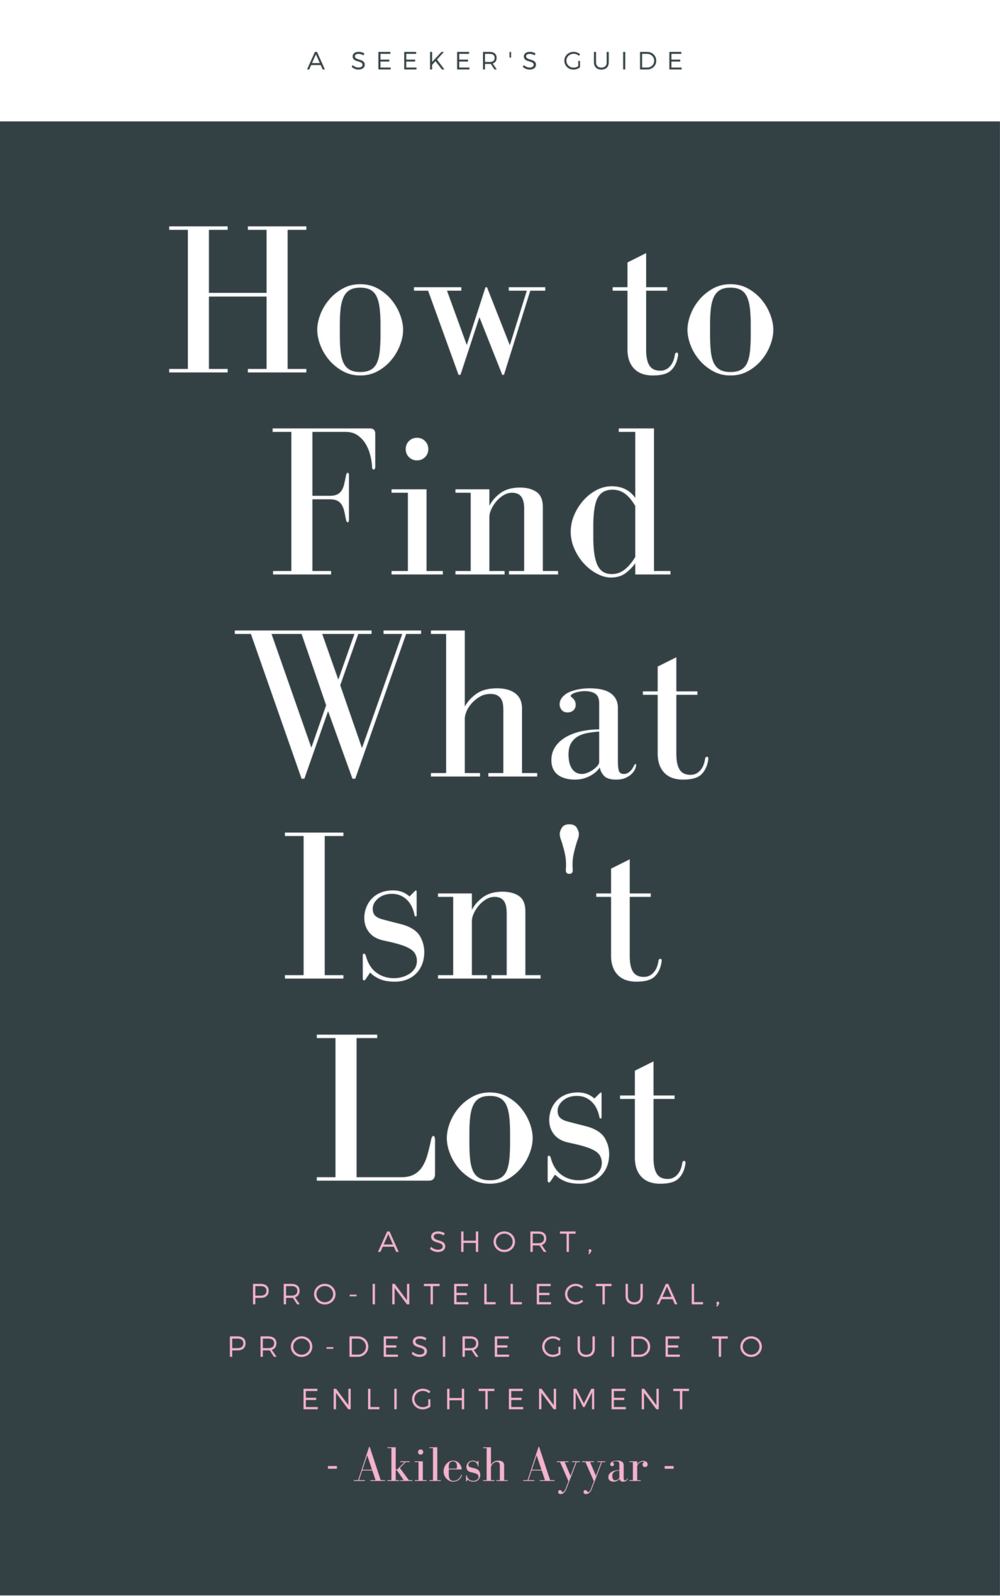 My book, How to Find What Isn't Lost, presents my entire system for spiritual seekers in an organized, simple, and comprehensive format. -